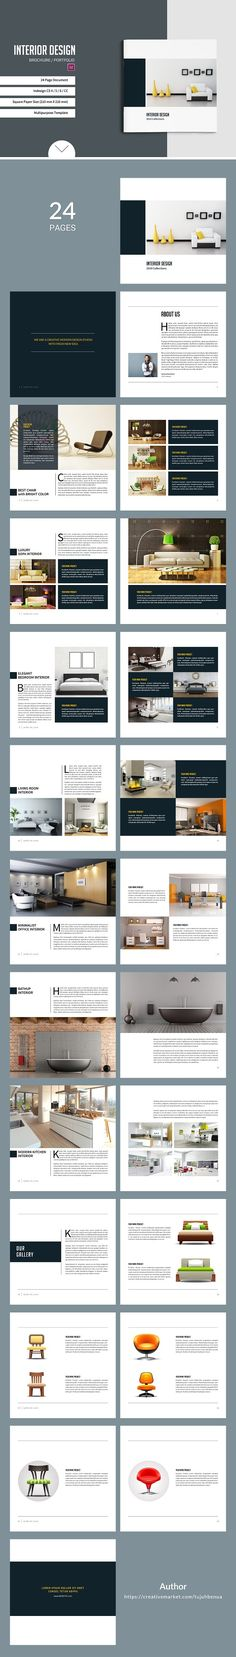 29 Best Ideas for design layout brochure inspiration Web Design, Layout Design, Flyer Design, Book Design, Flyer Layout, Brochure Layout, Brochure Template, Brochure Ideas, Digital Illustration